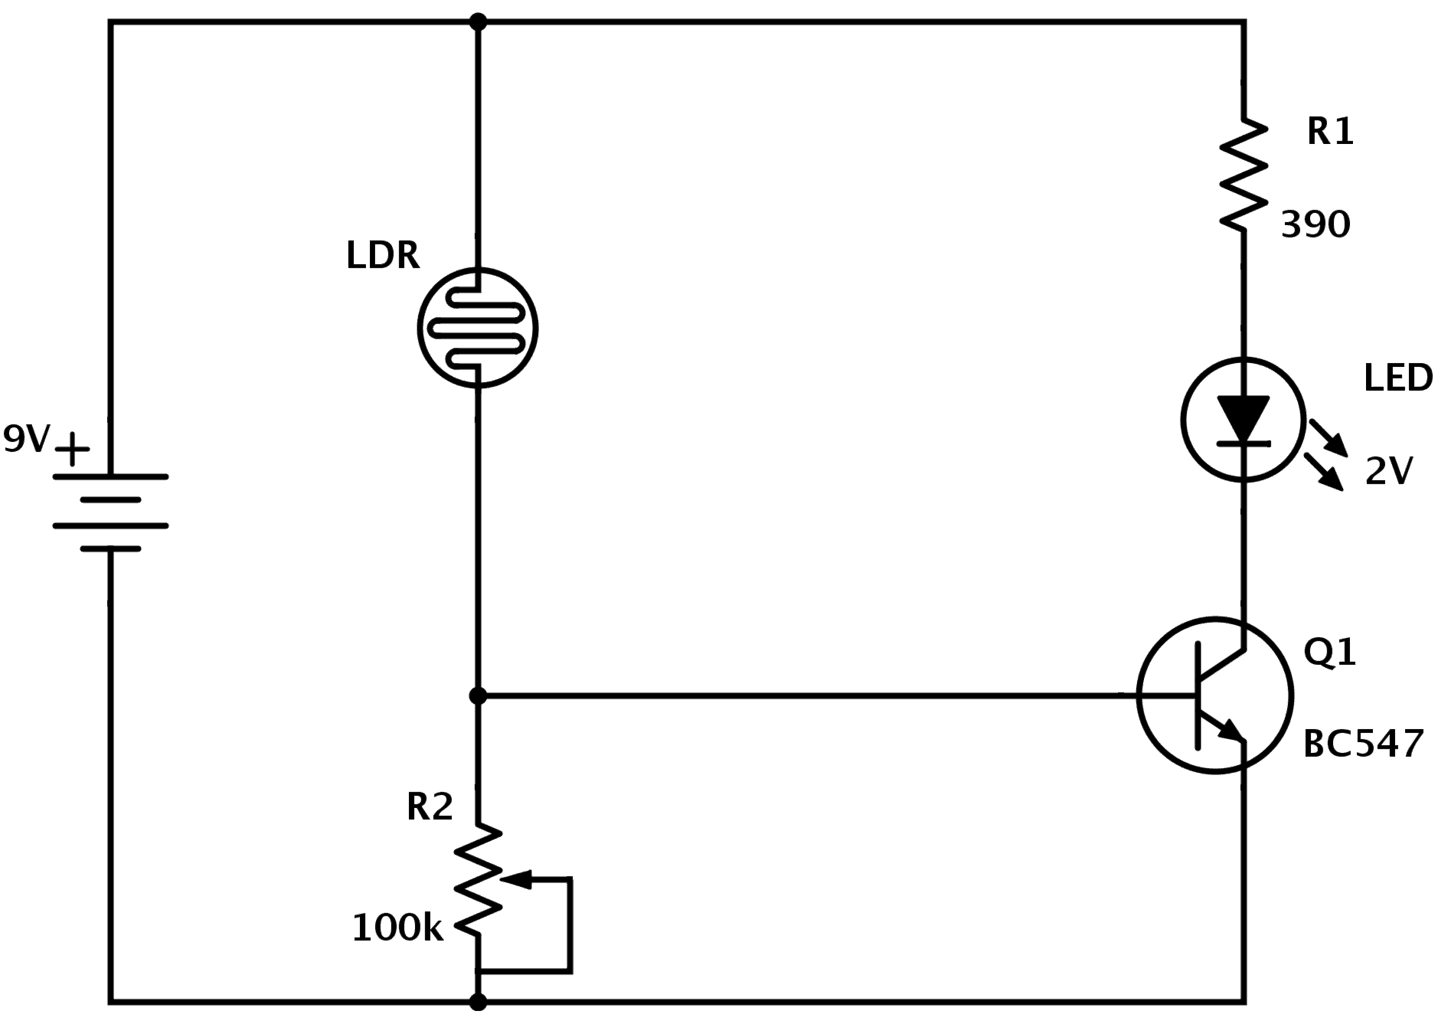 Ldr Circuit Diagram Build Electronic Circuits Am Transmitter Block How Do I Use Digilent Products At